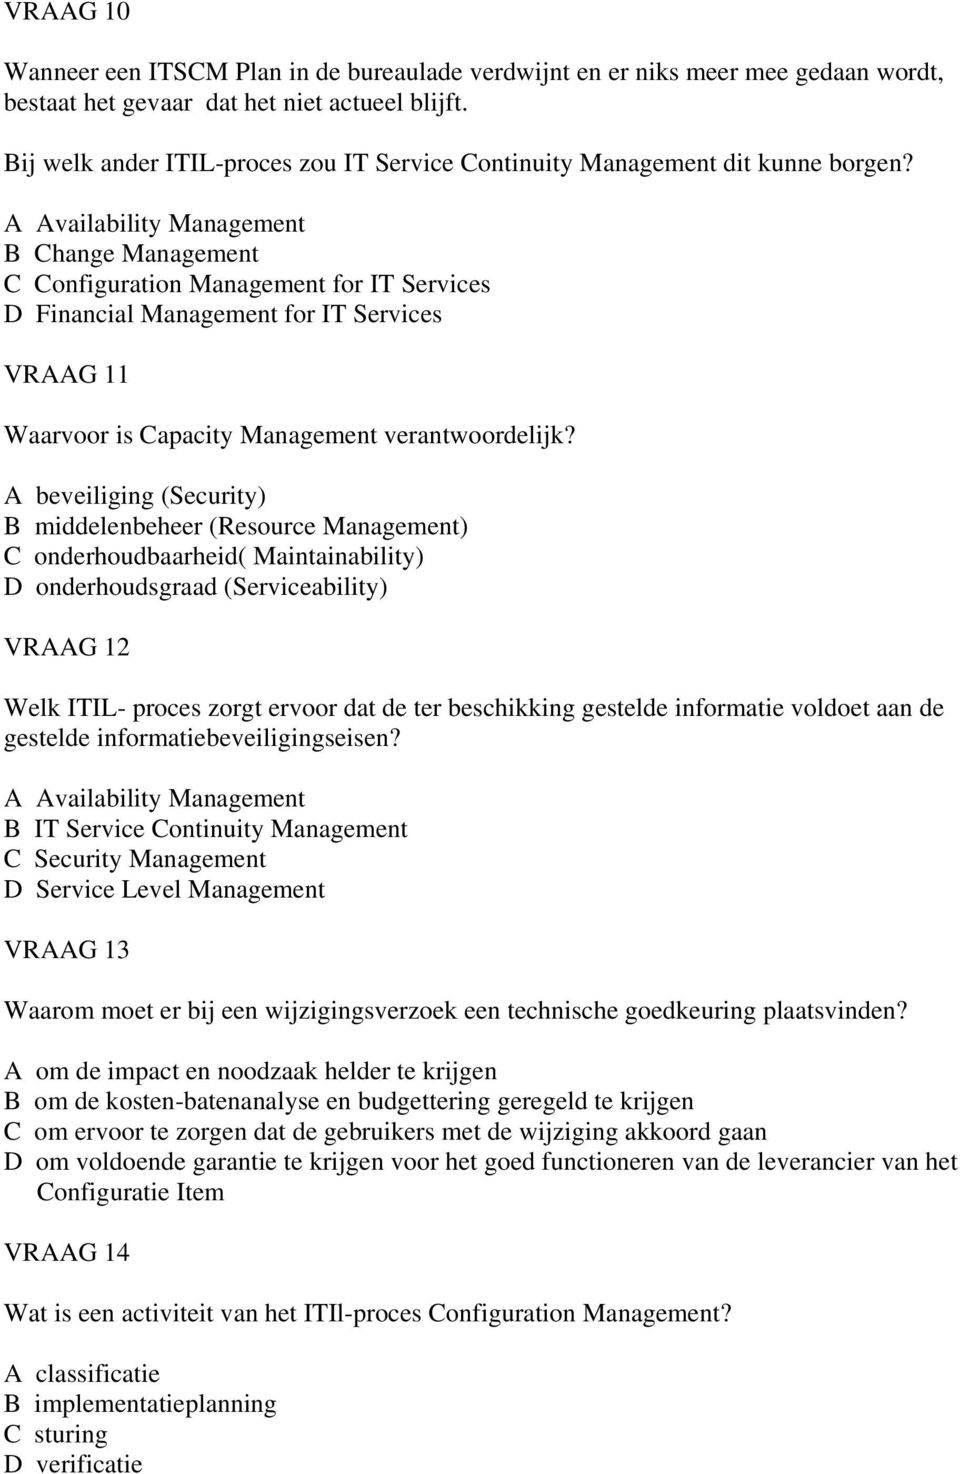 A Availability Management B Change Management C Configuration Management for IT Services D Financial Management for IT Services VRAAG 11 Waarvoor is Capacity Management verantwoordelijk?